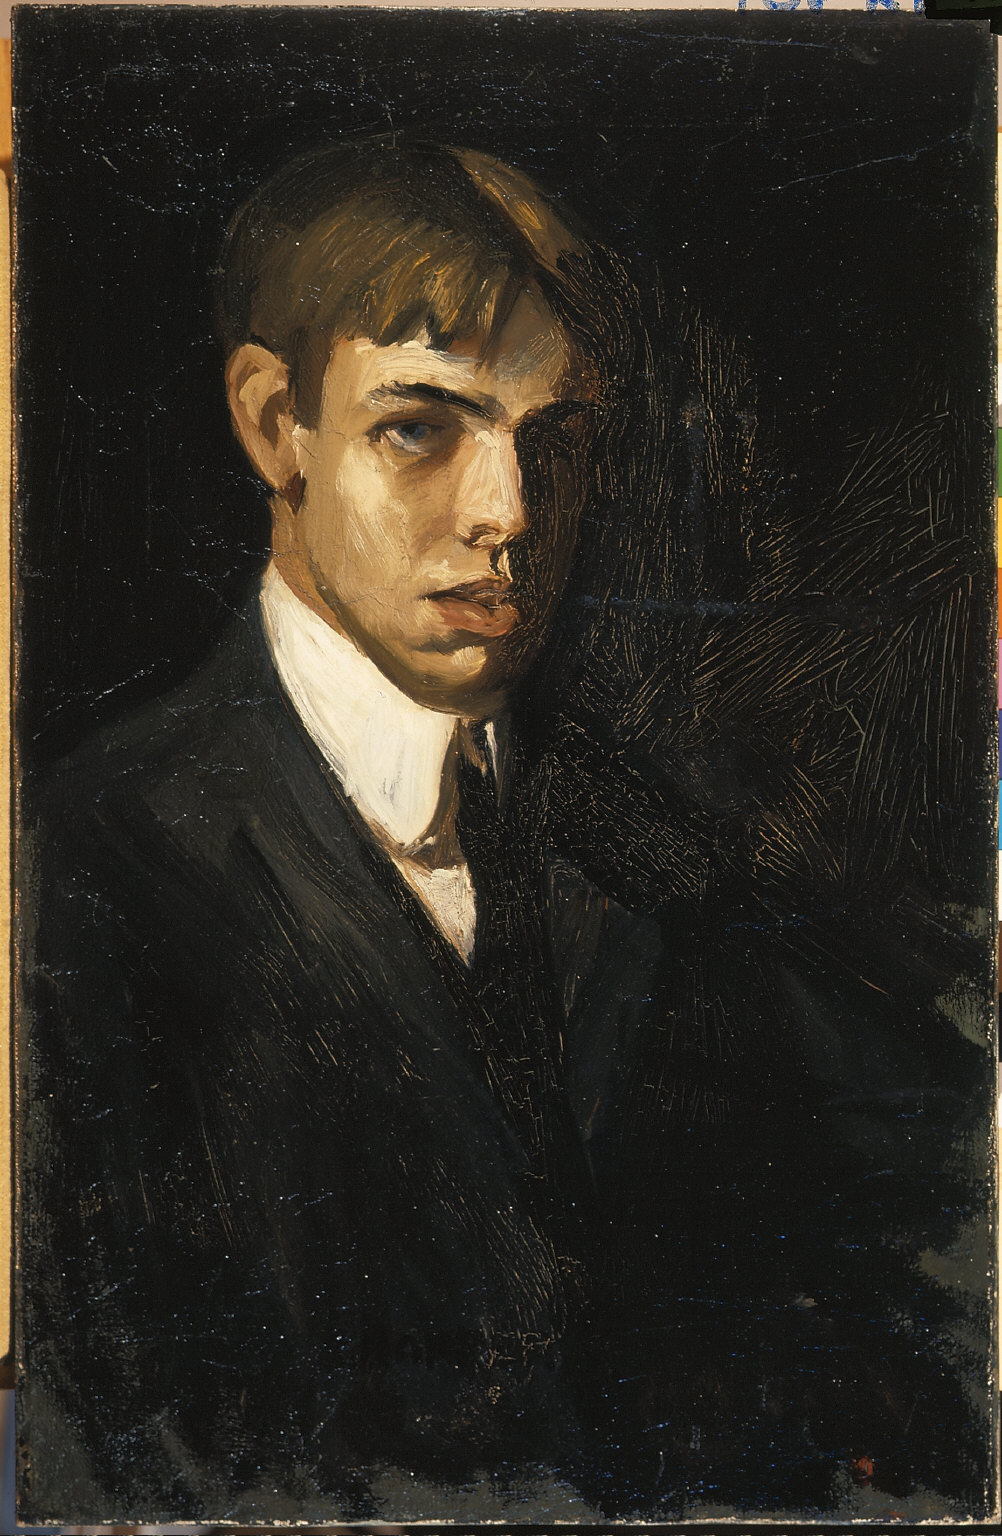 (Self-Portrait)